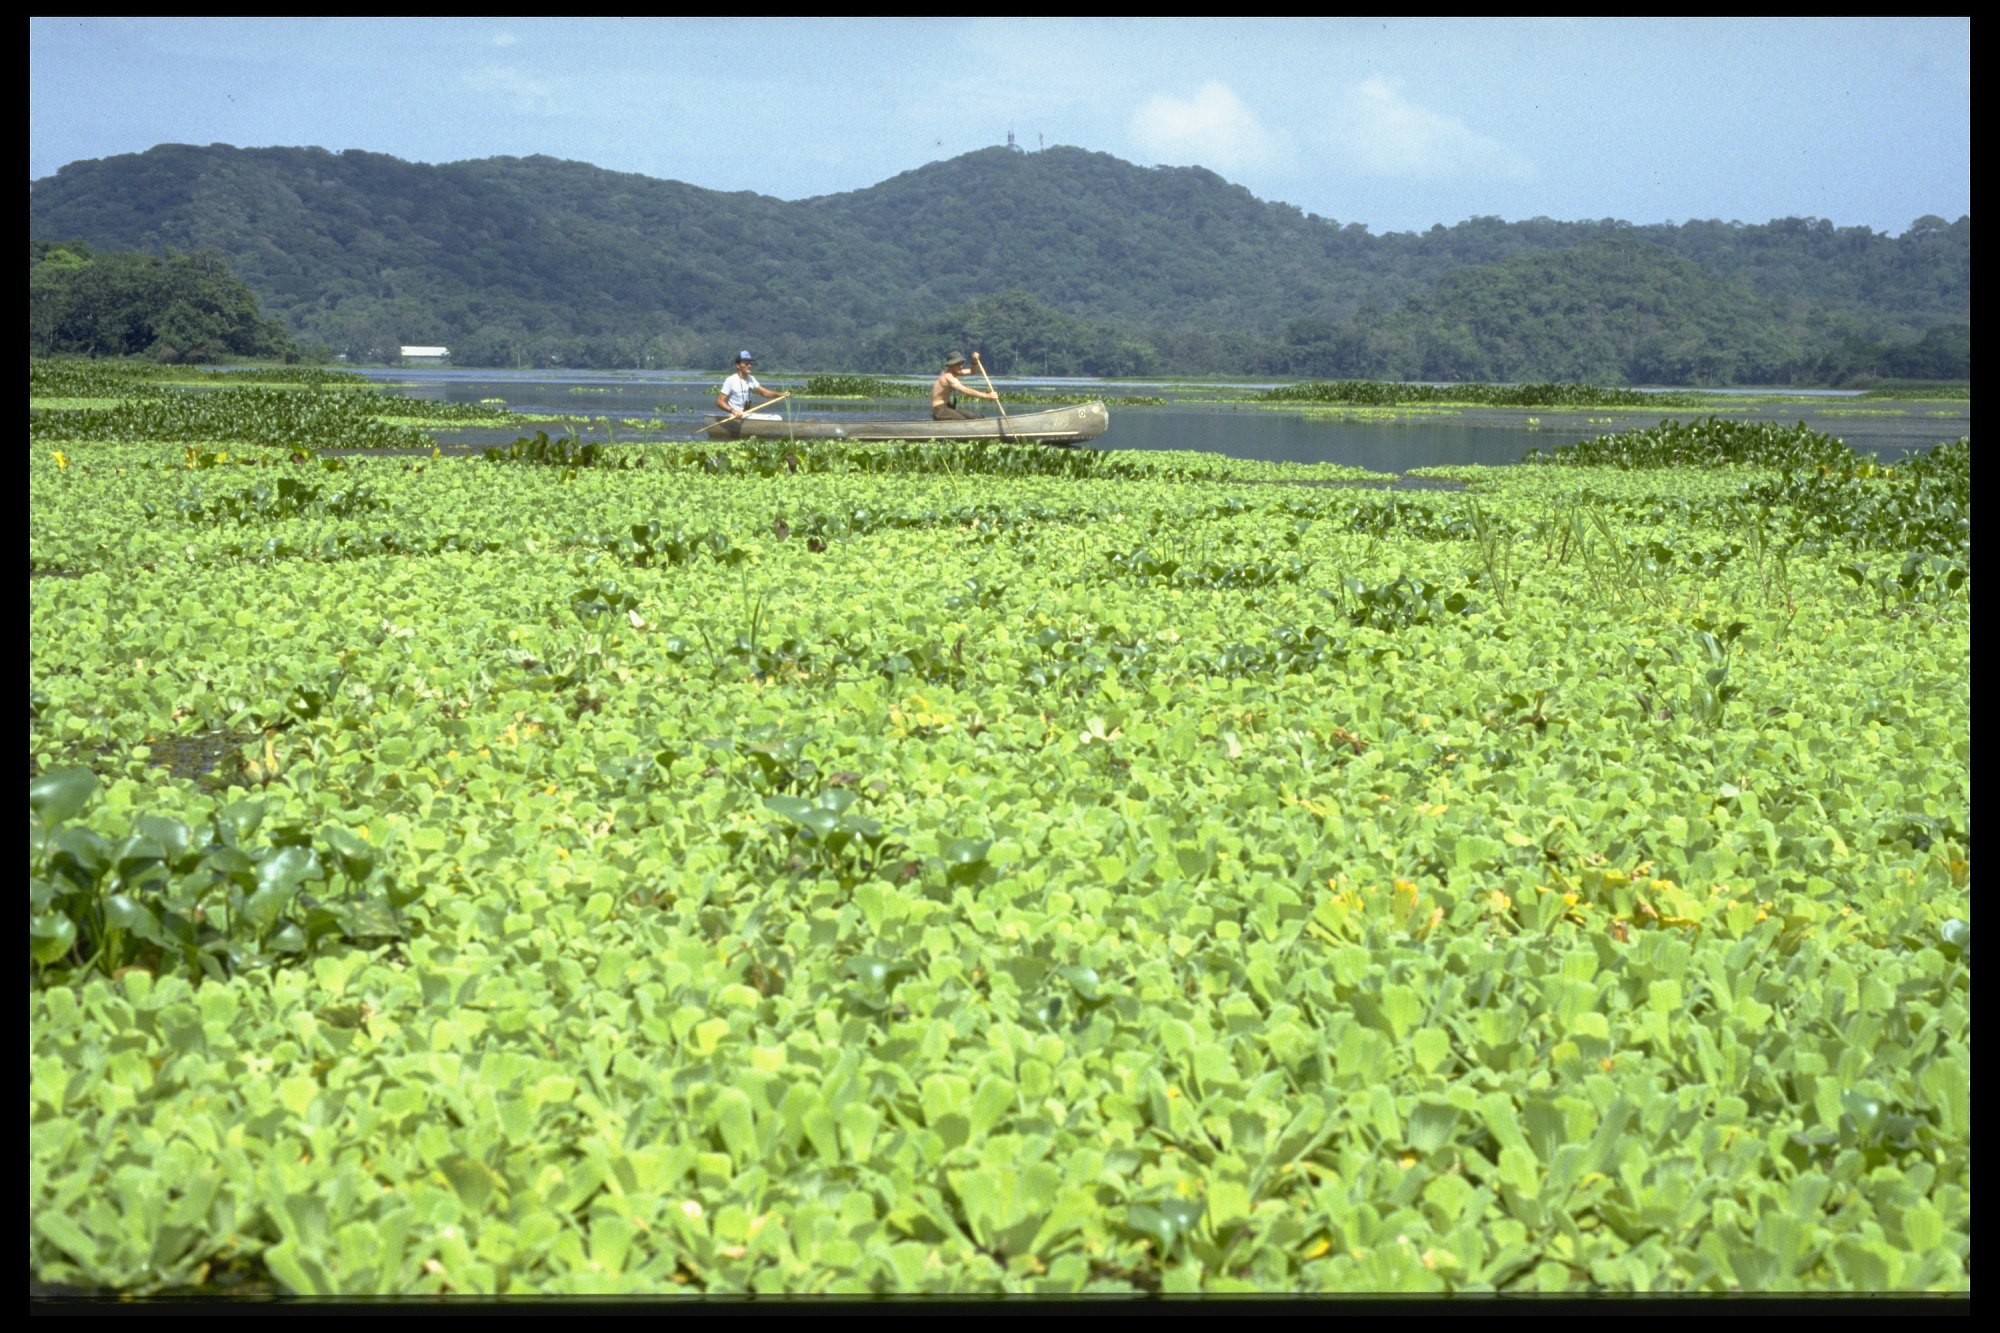 STRI Fellows on River, Panama, 1990, Smithsonian Institution Archives, SIA Acc. 11-009 [92-1955].